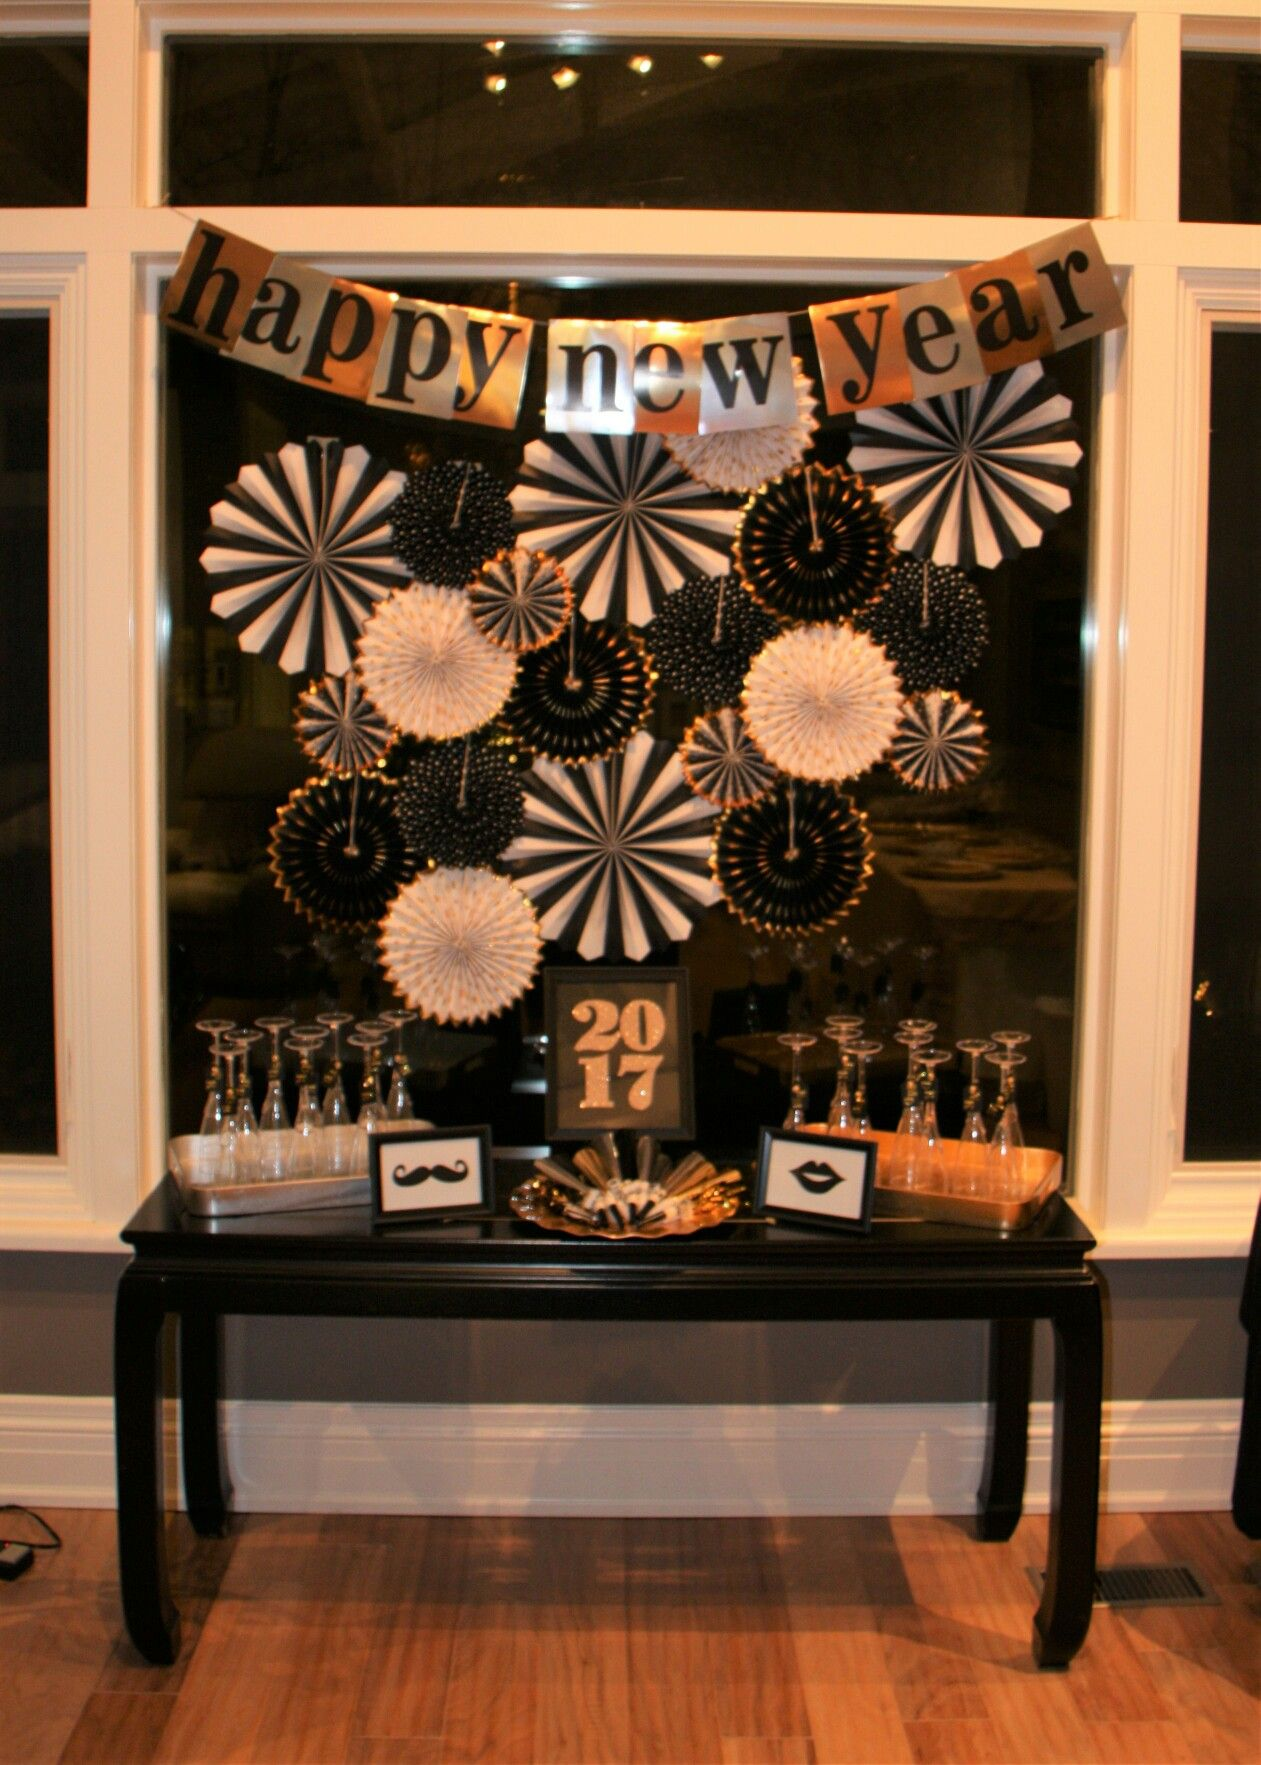 Pin By Dra Marilu On Happy New Years In 2020 New Years Eve Decorations New Years Eve Party Nye Party Decorations